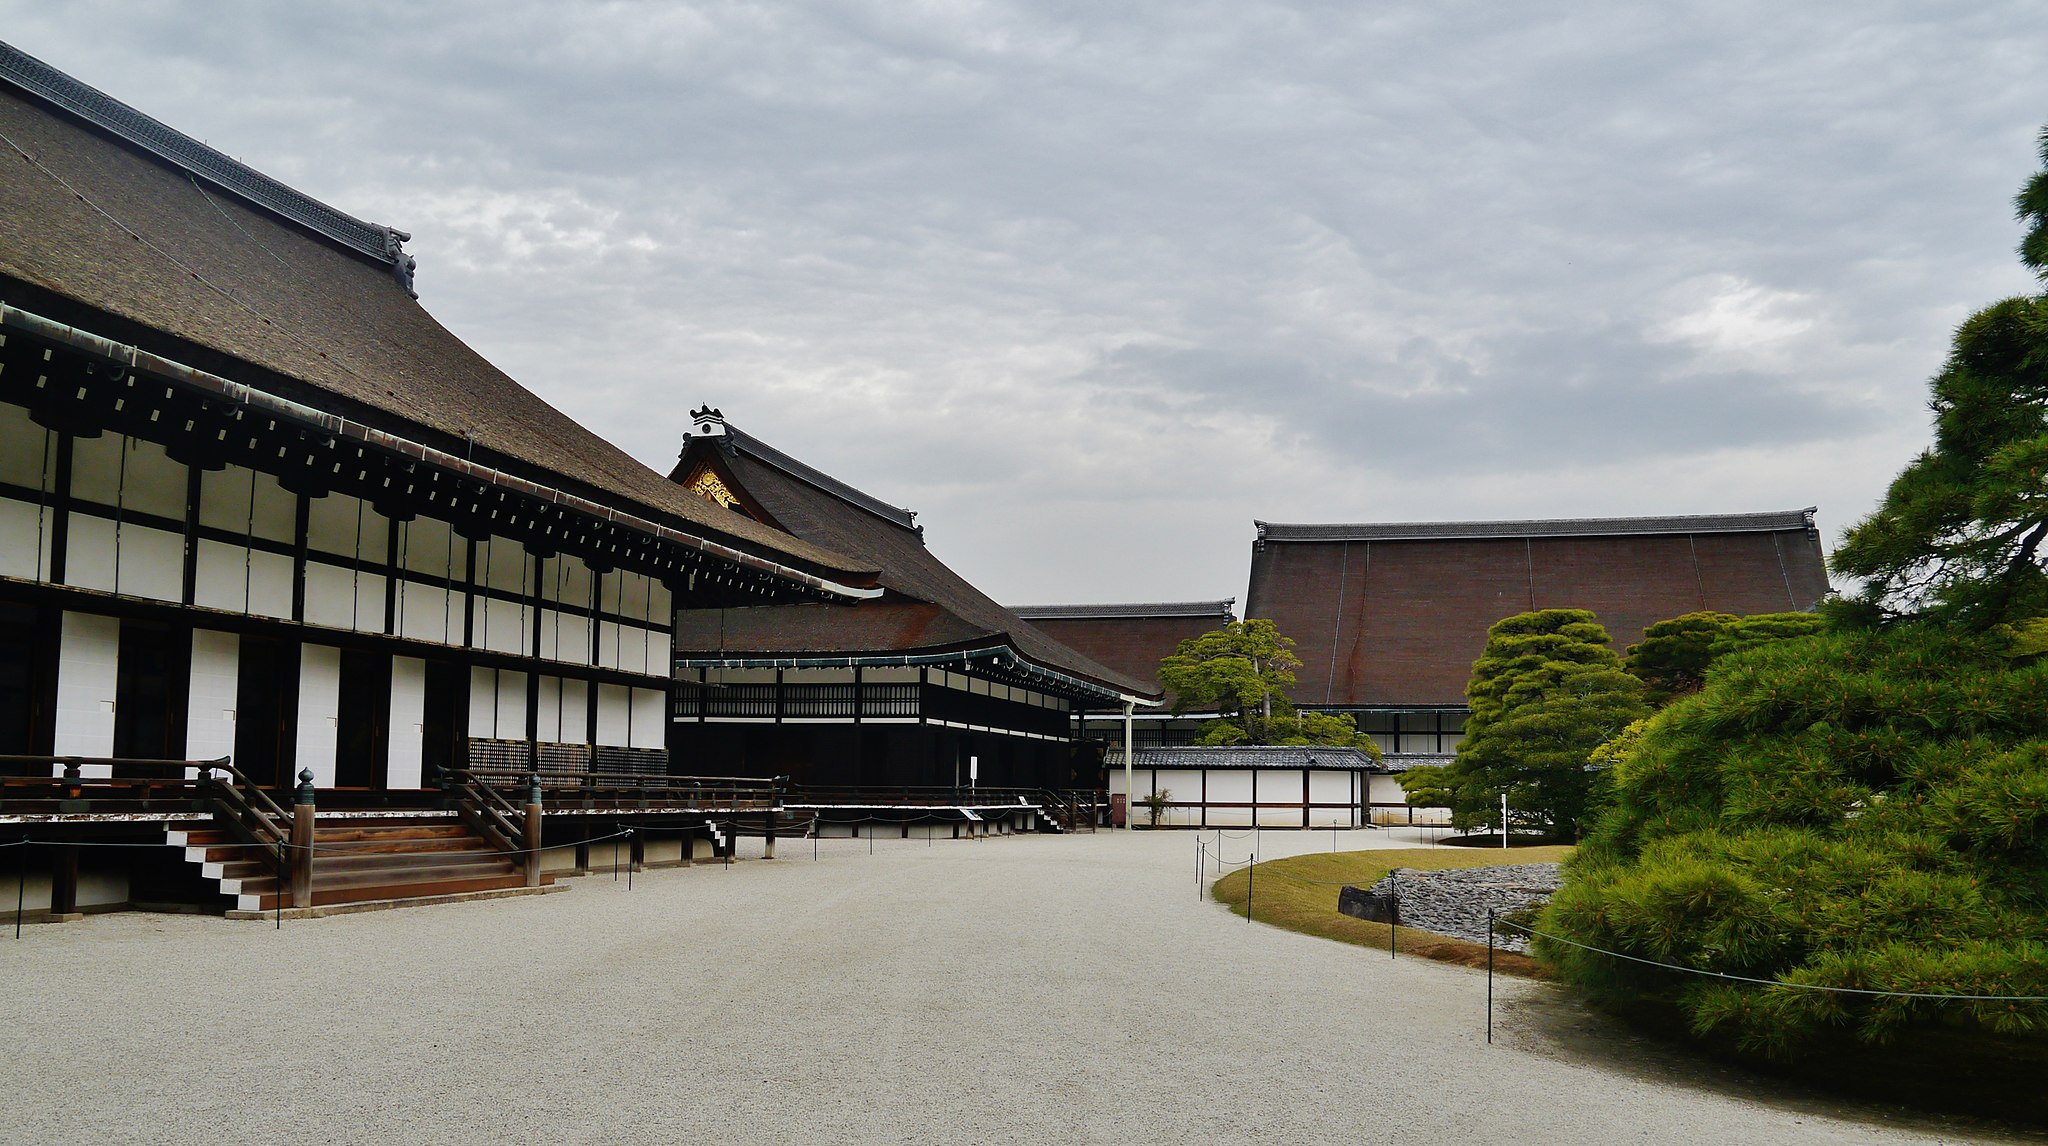 Kyoto Imperial Palace. Credit: Zairon. Licensed under CC.